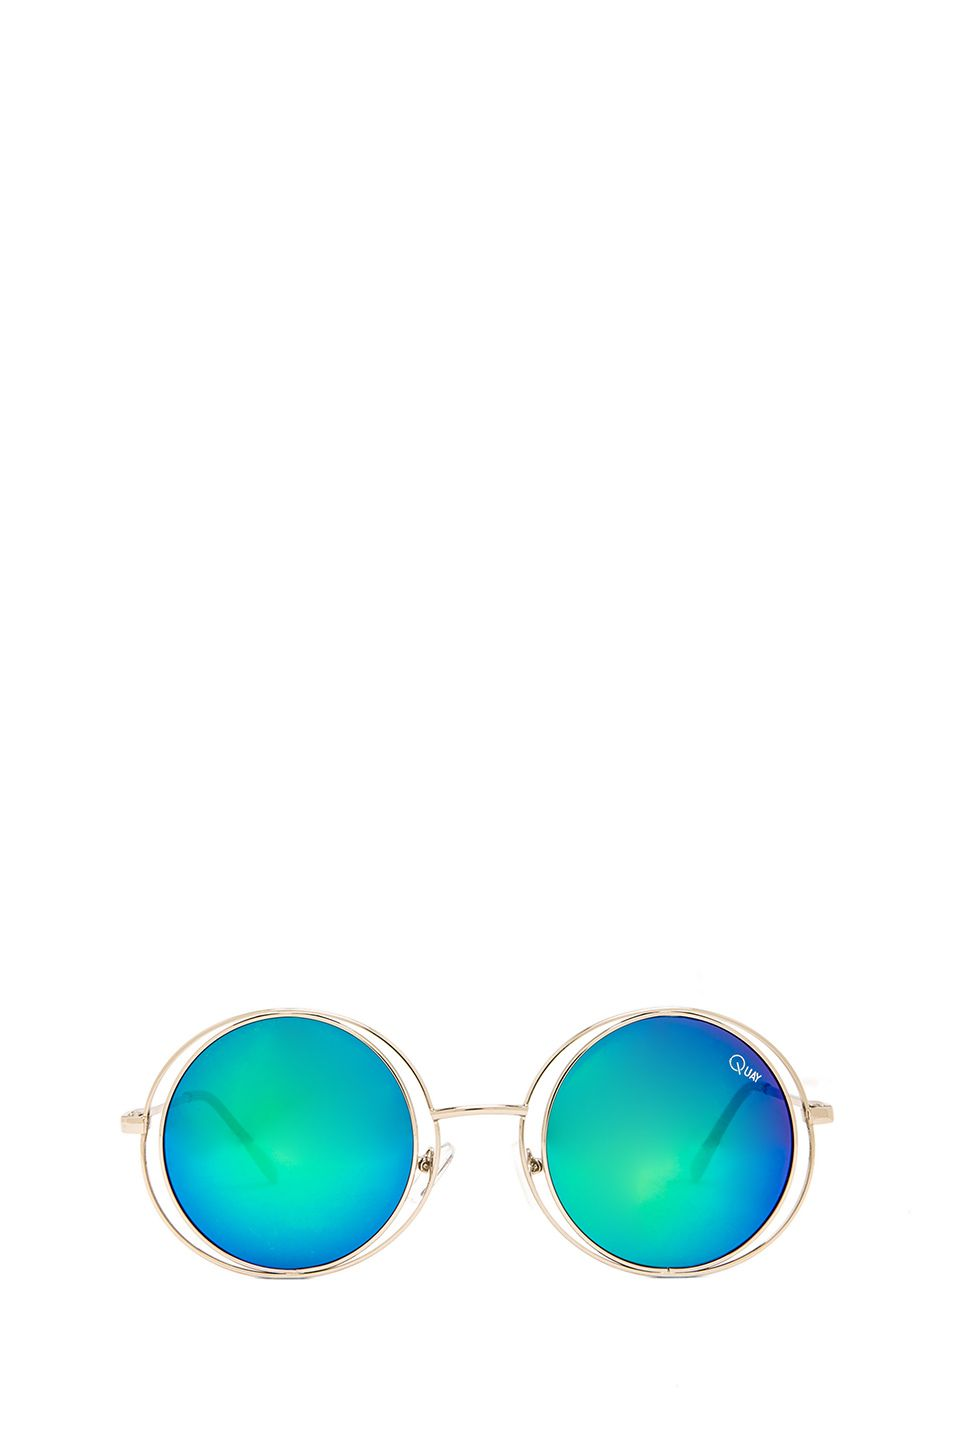 Quay Cherish Sunglasses in Silver Green (With images